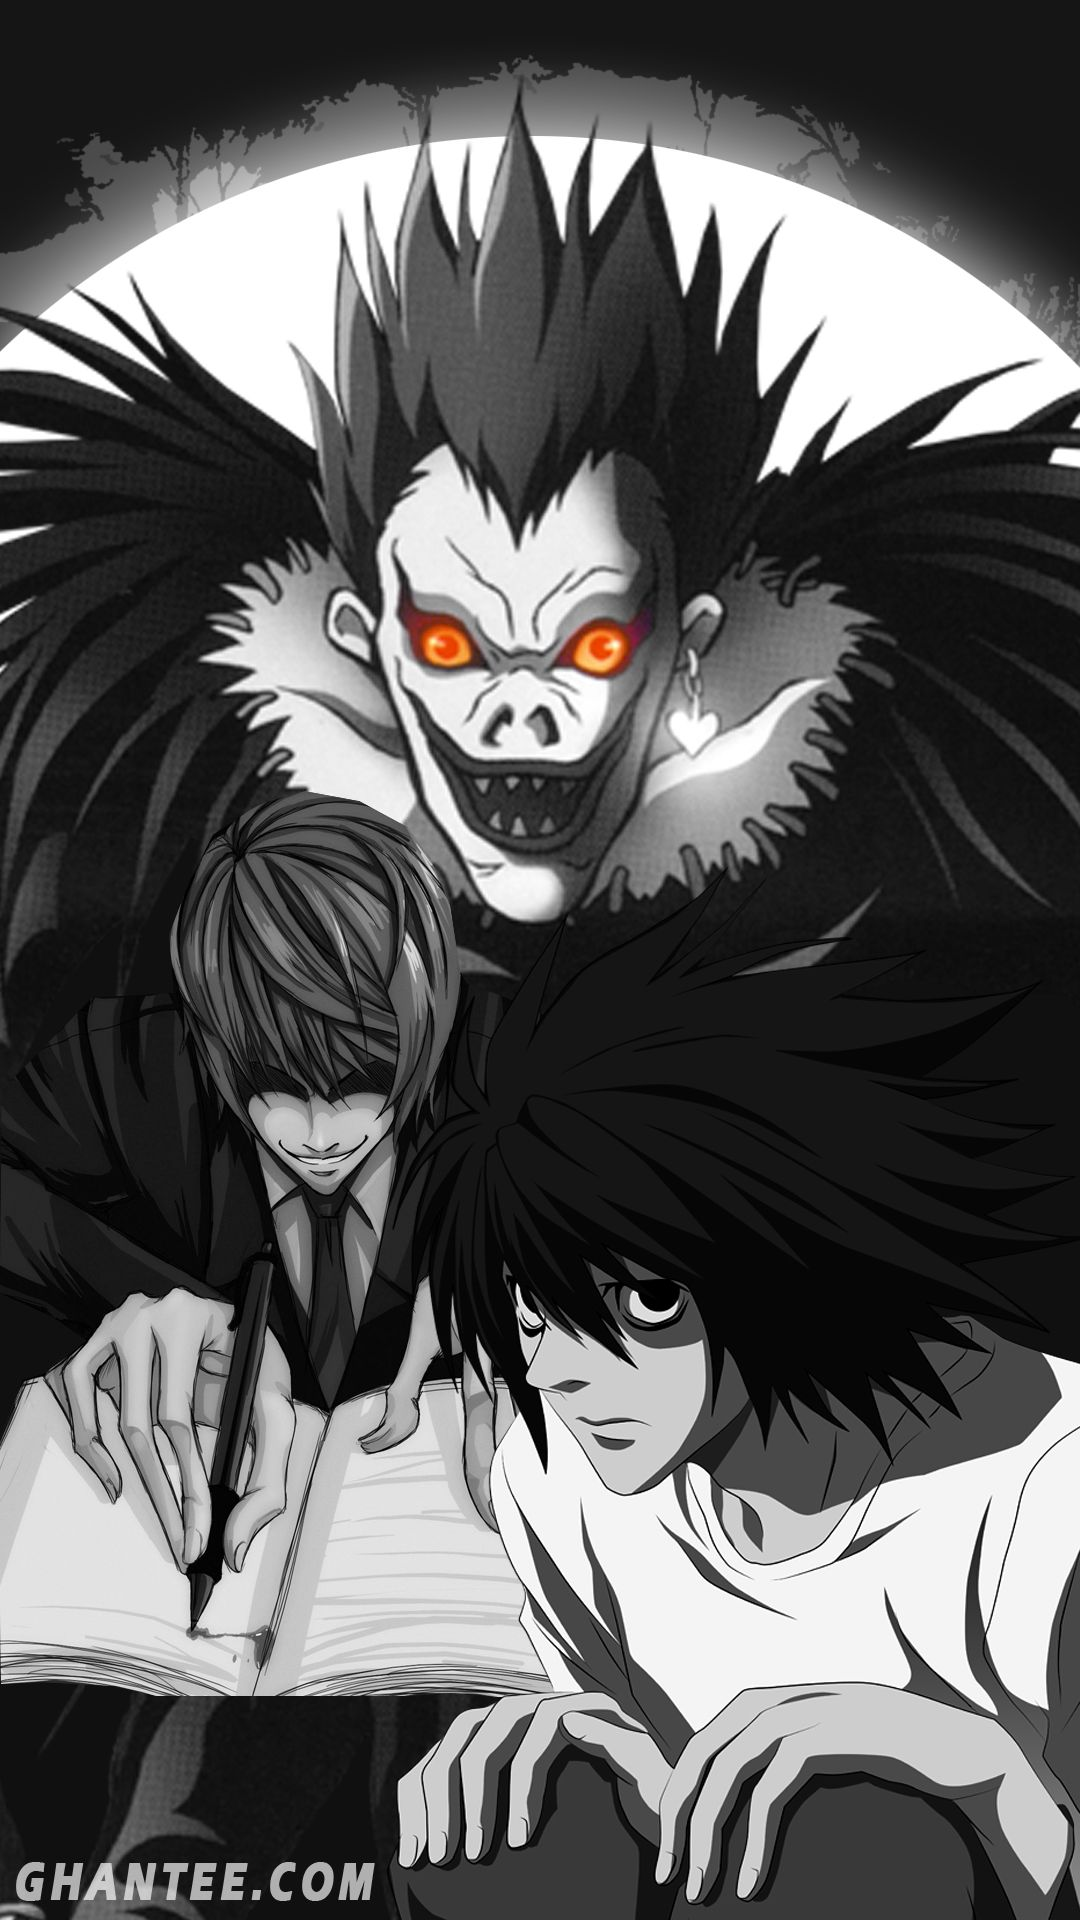 Anime Wallpaper Android Deathnote In 2020 Anime Wallpaper Death Note Anime